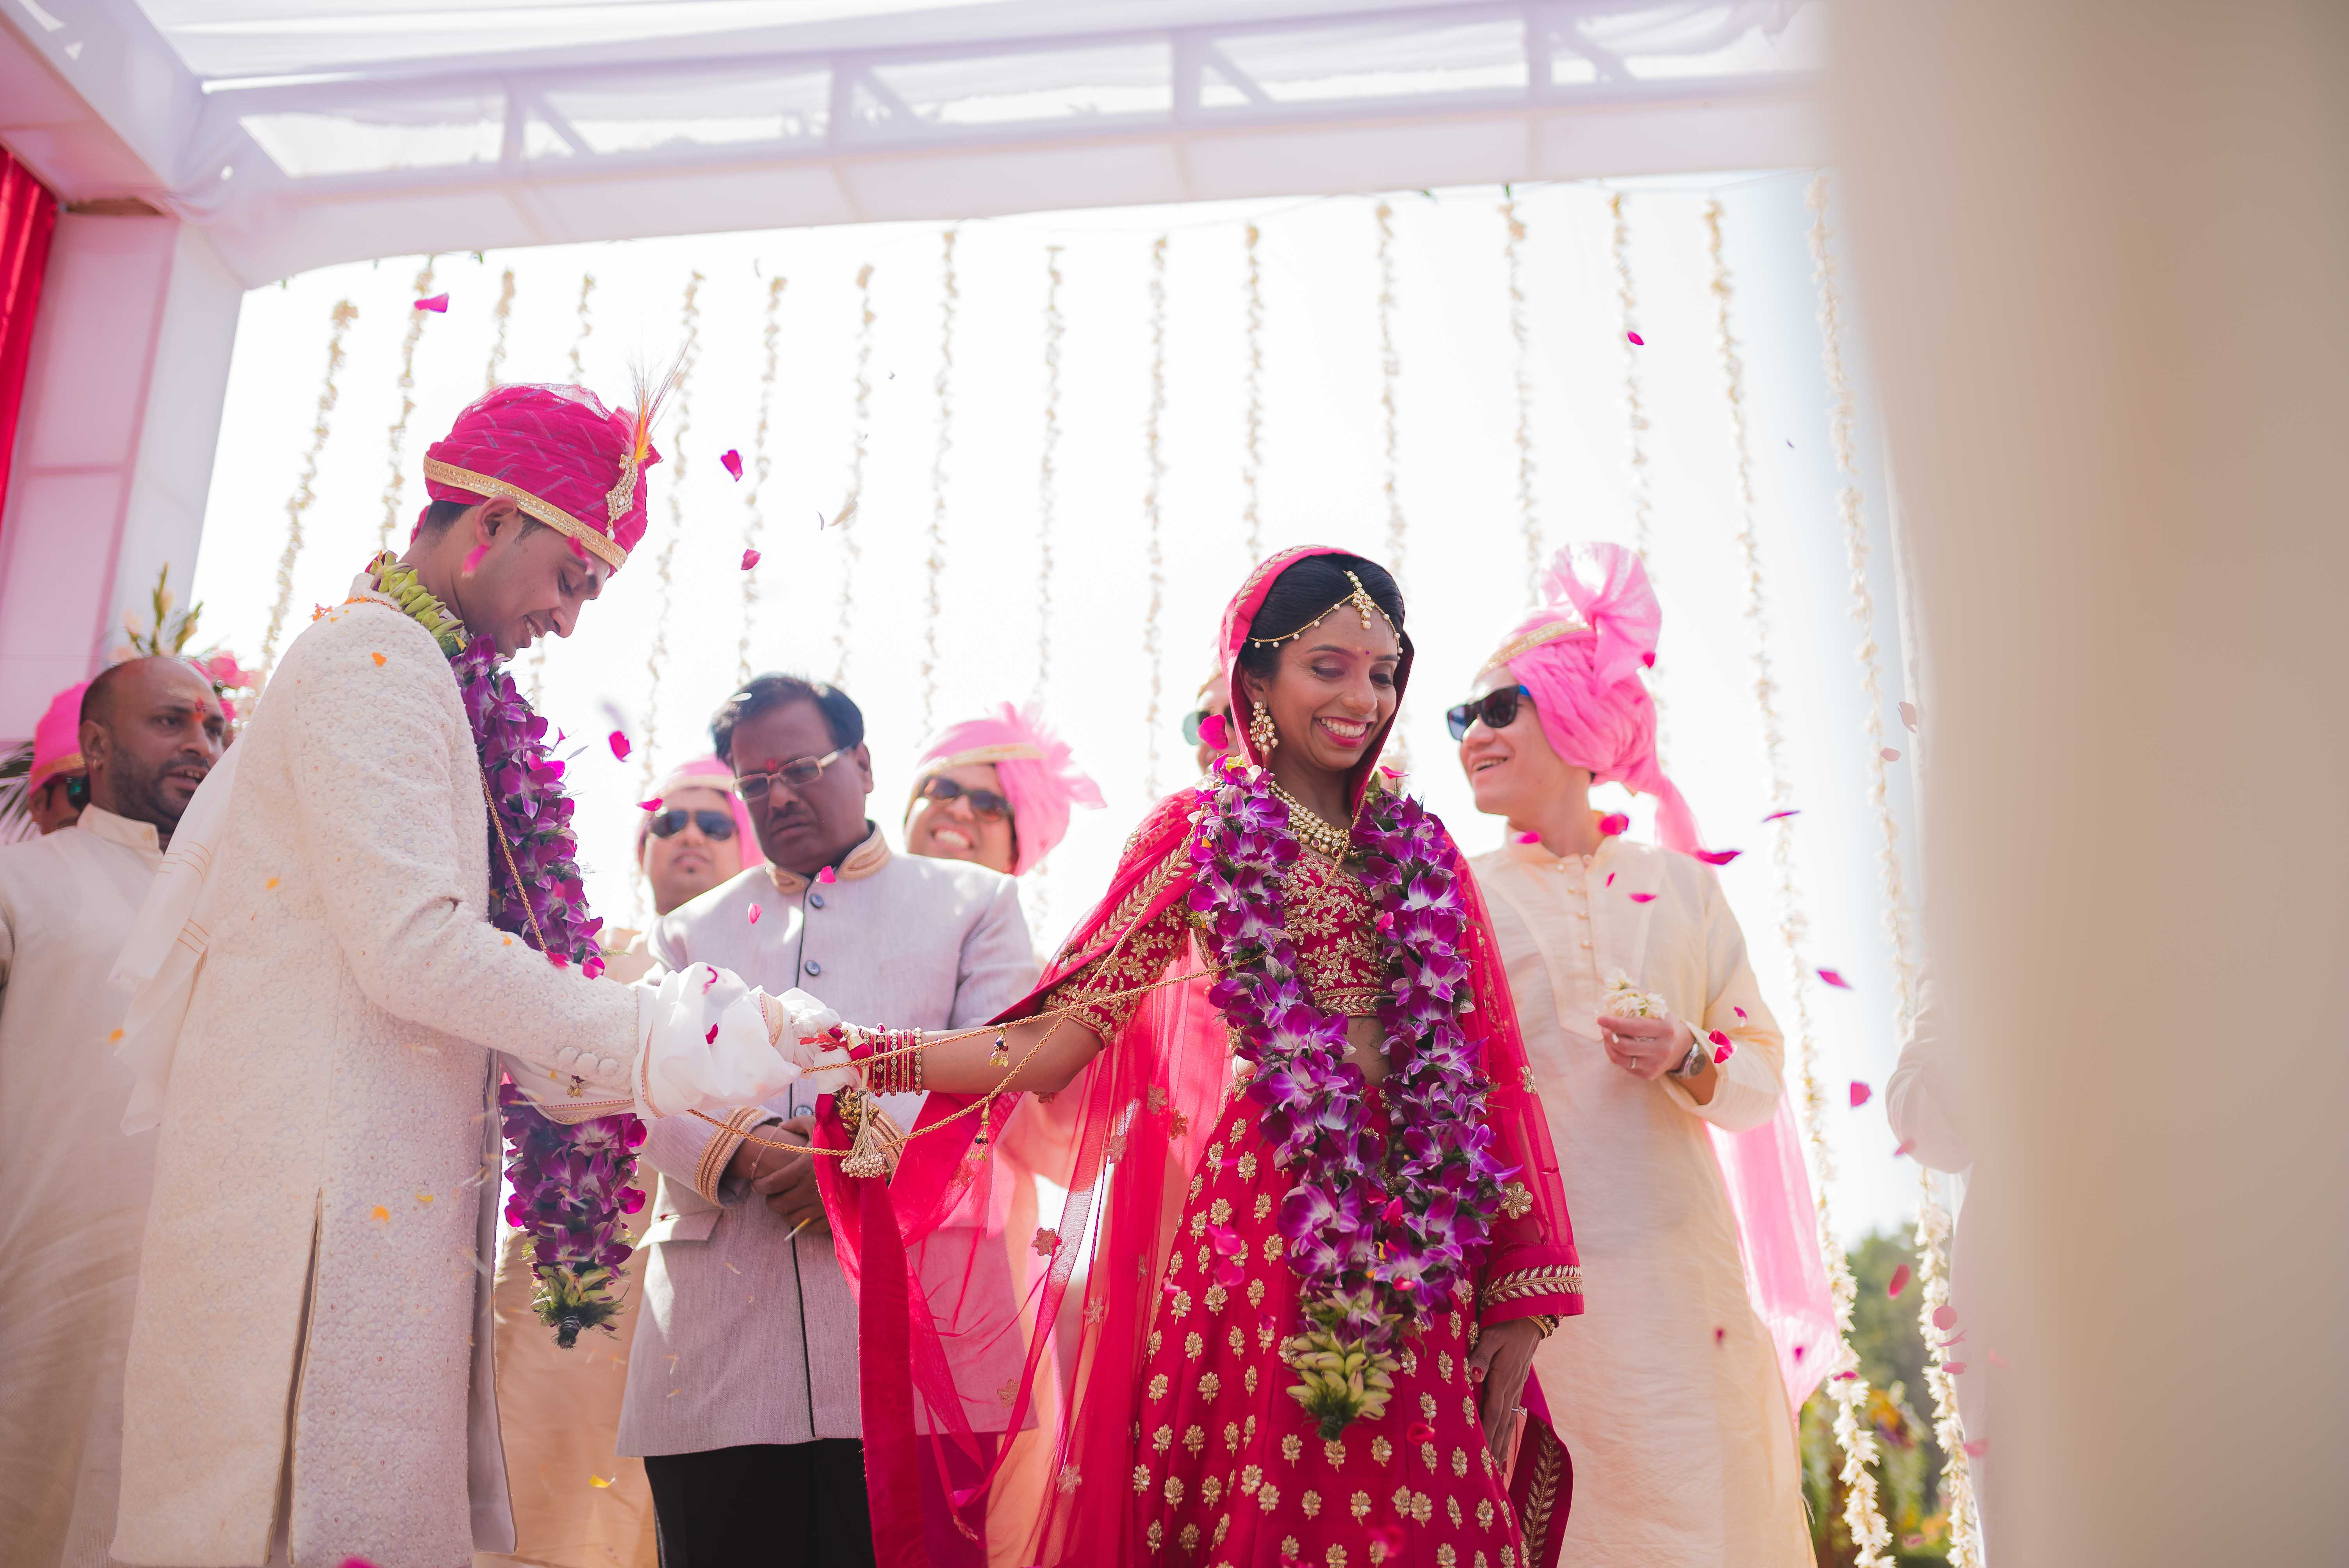 Indian Bride and Groom at Destination Wedding - Nidhi + Arpan